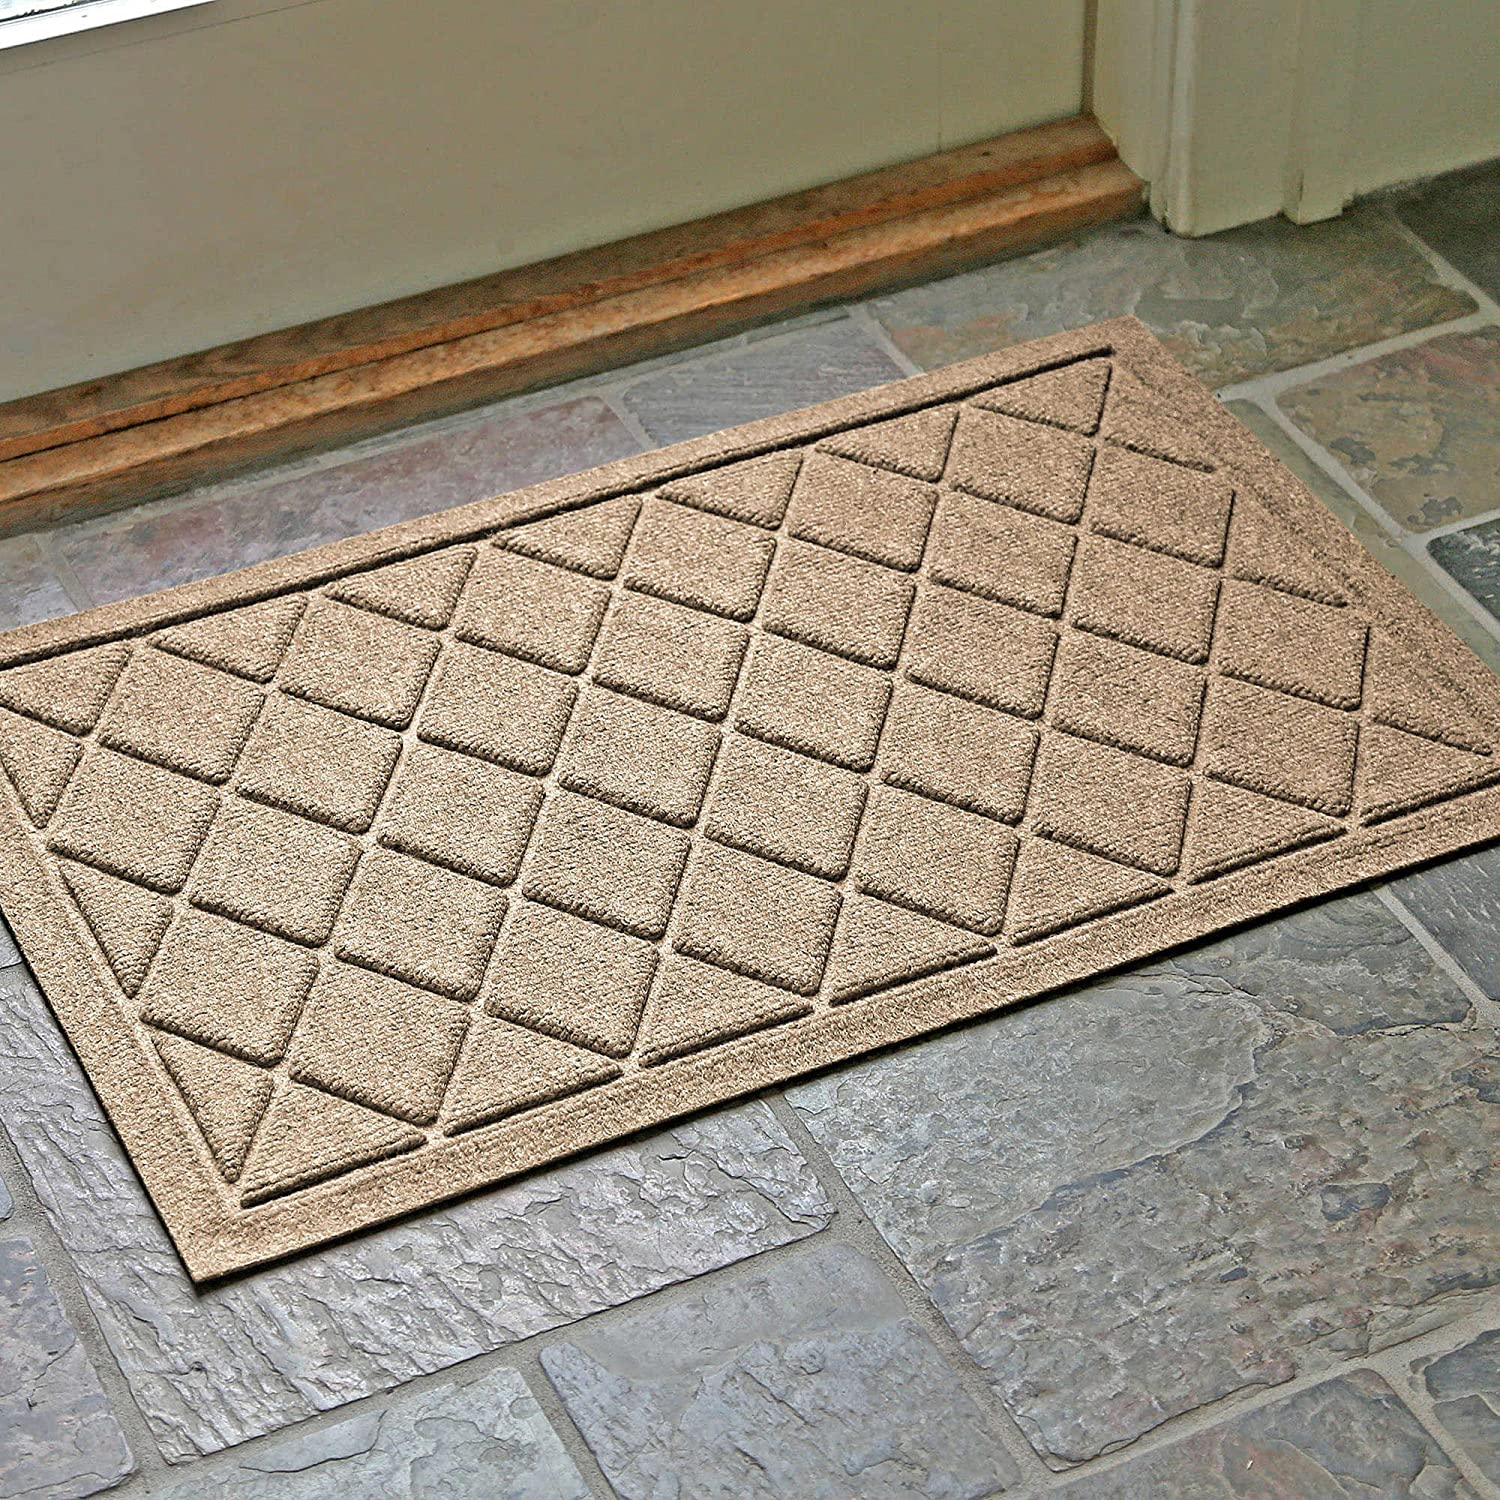 warrant new welcome mats collections wife with best weather funny kids husband cool beware of doormat winning the good pets come image novelty rude warning back unusual outdoor guard a damn doormats shady door